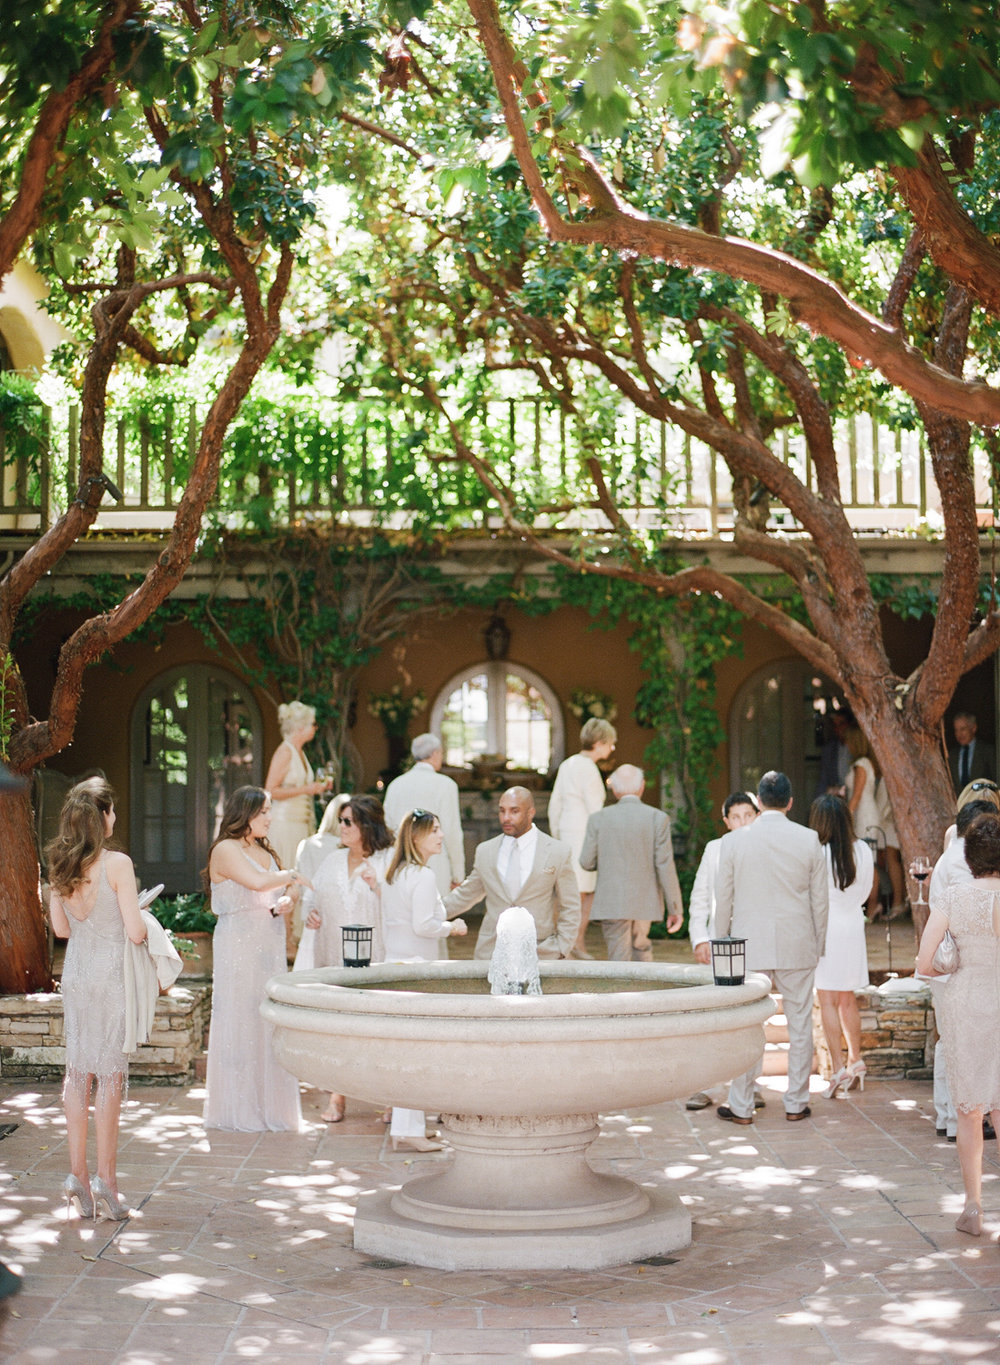 Guests in white and ivory arrive for the wedding at the Santa Lucia Preserve in Carmel, California; Sylvie Gil Photography